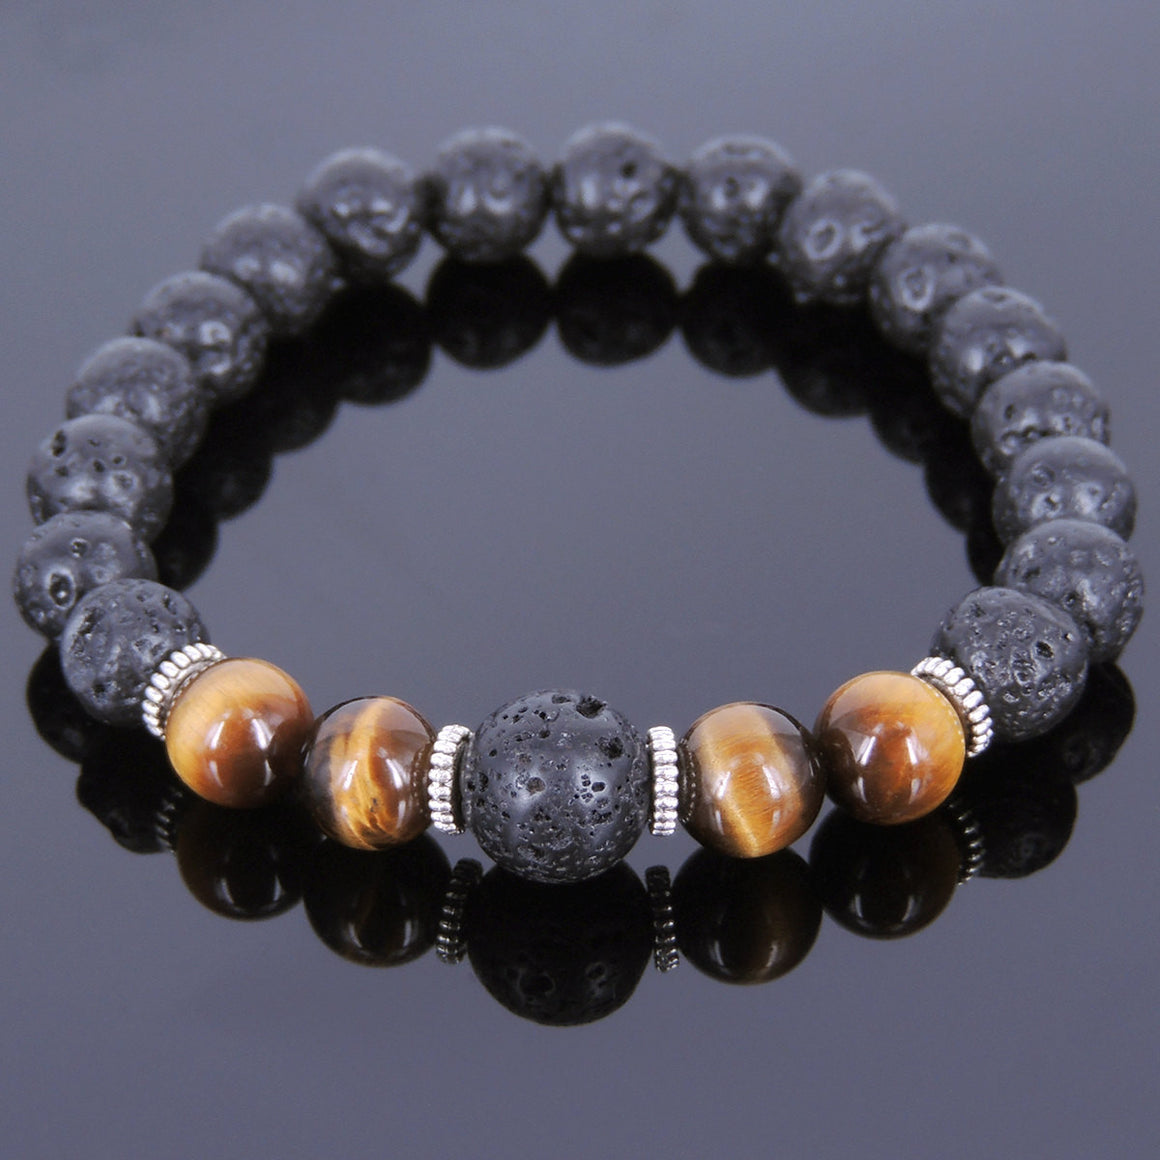 Brown Tiger Eye & Lava Rock Healing Gemstone Bracelet with Tibetan Silver Spacers - Handmade by Gem & Silver TSB090